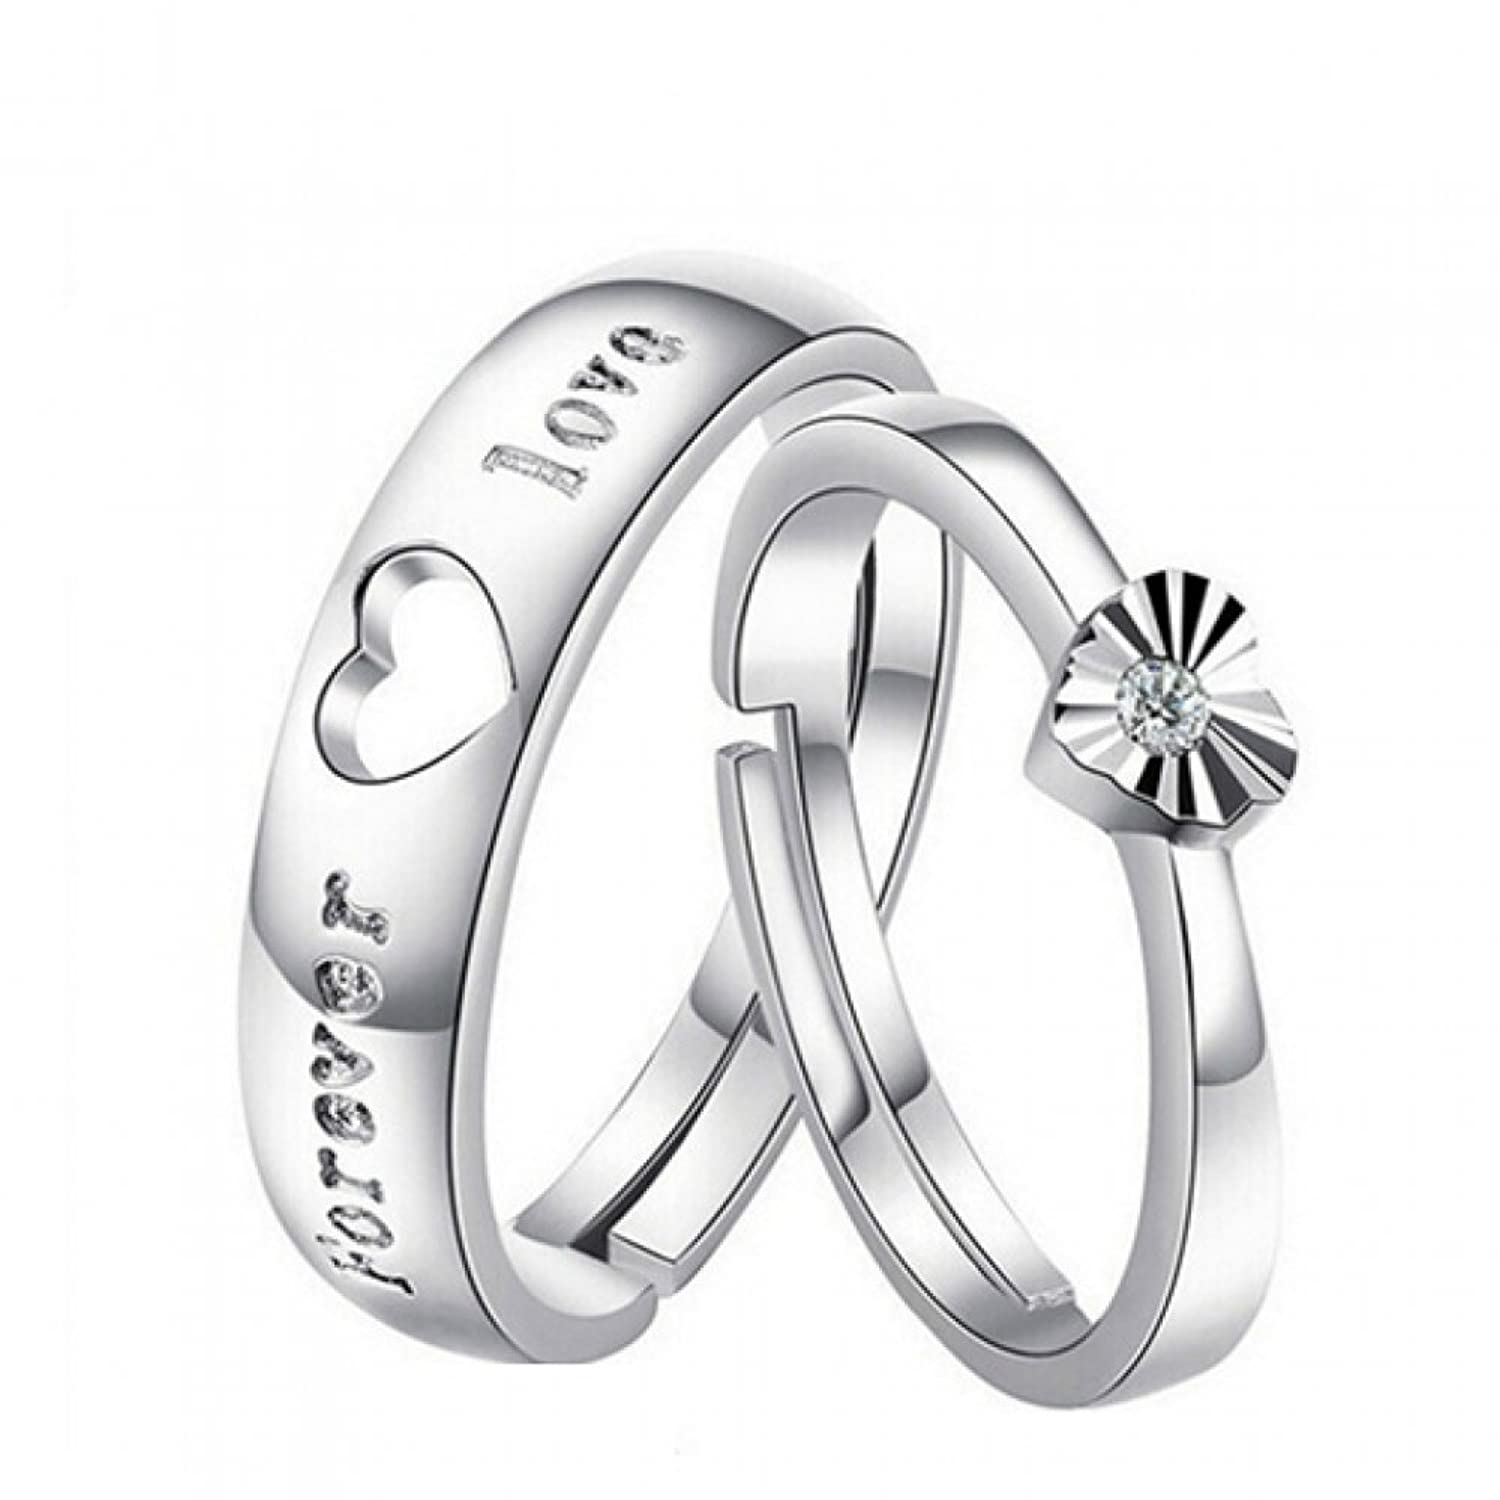 gift p endless women s stainless jewelry love mens ring silver steel men lover rings